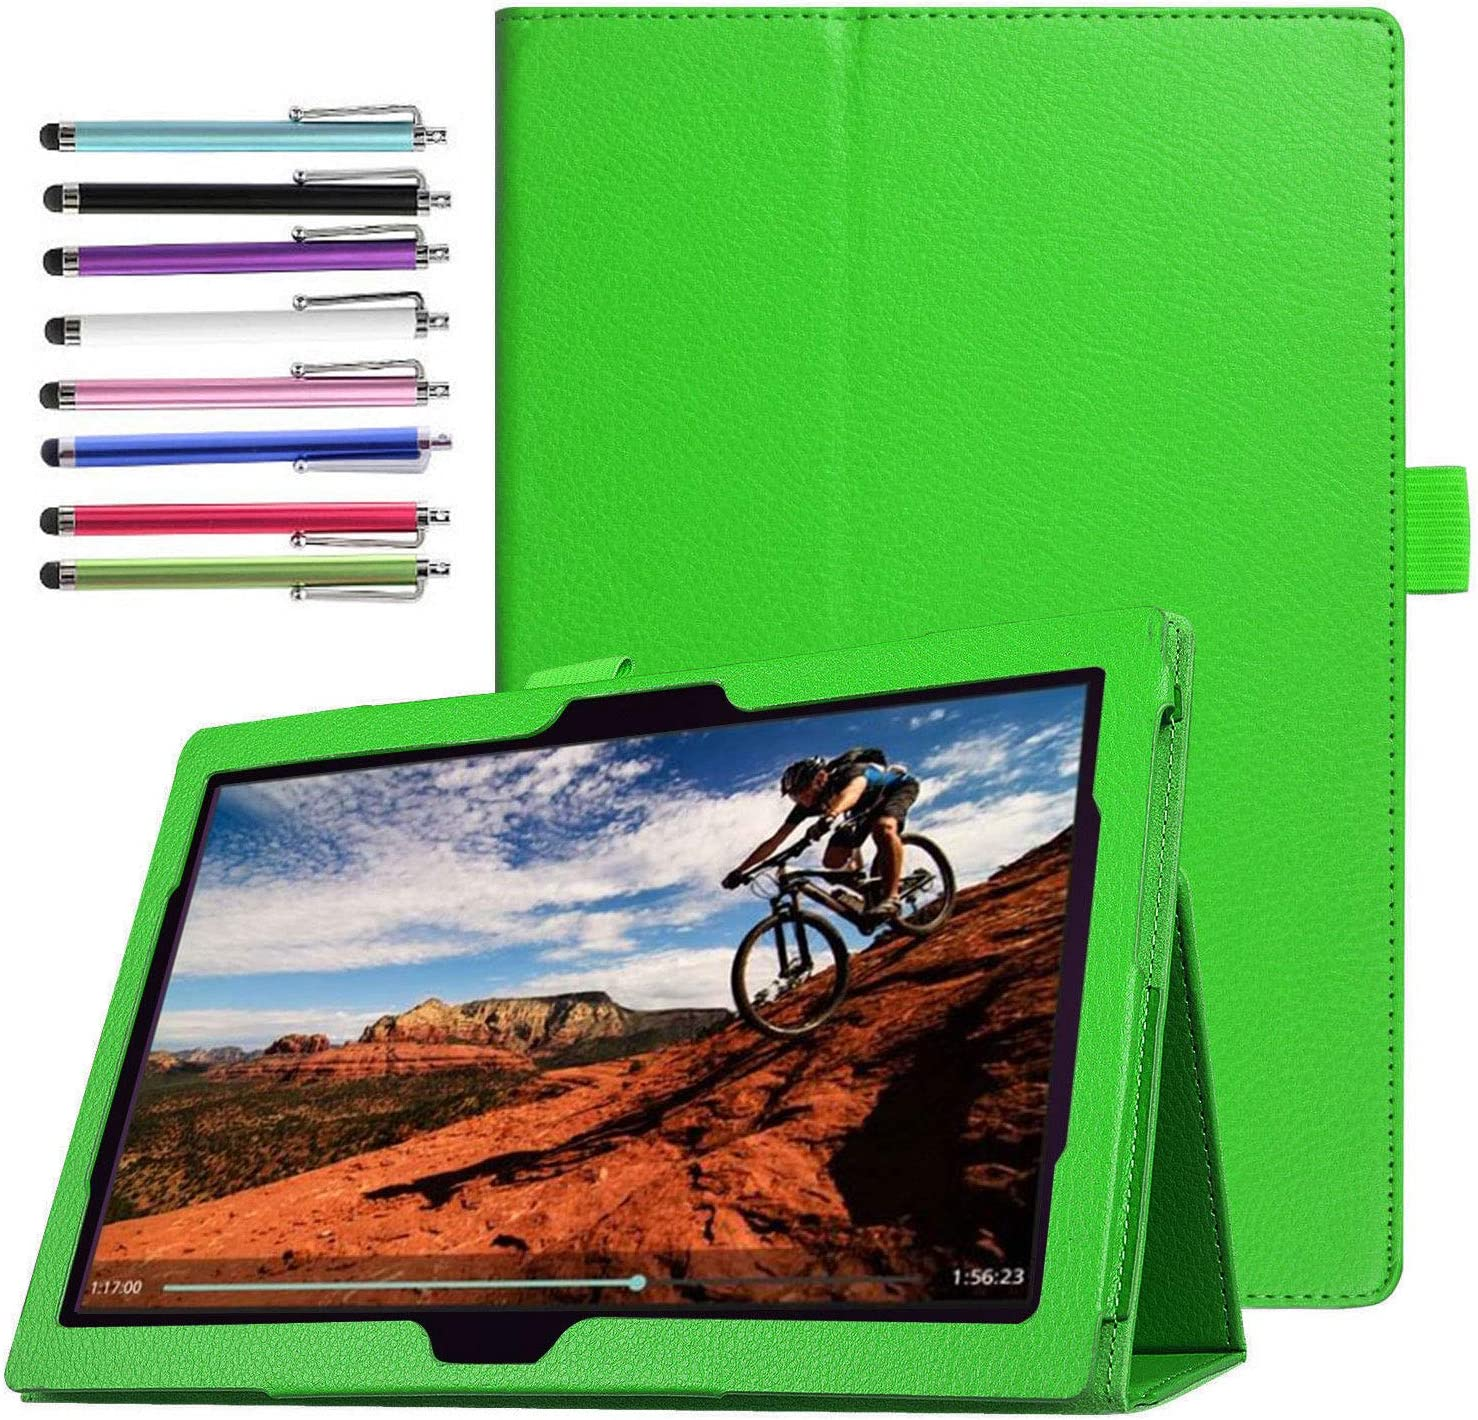 Epicgadget Case for Lenovo Tab E10 (TB-X104F), Slim Lightweight Folio PU Leather Folding Stand Cover Case for Lenovo Tablet 2018 Tab E 10 10.1 Inch Display (Green)